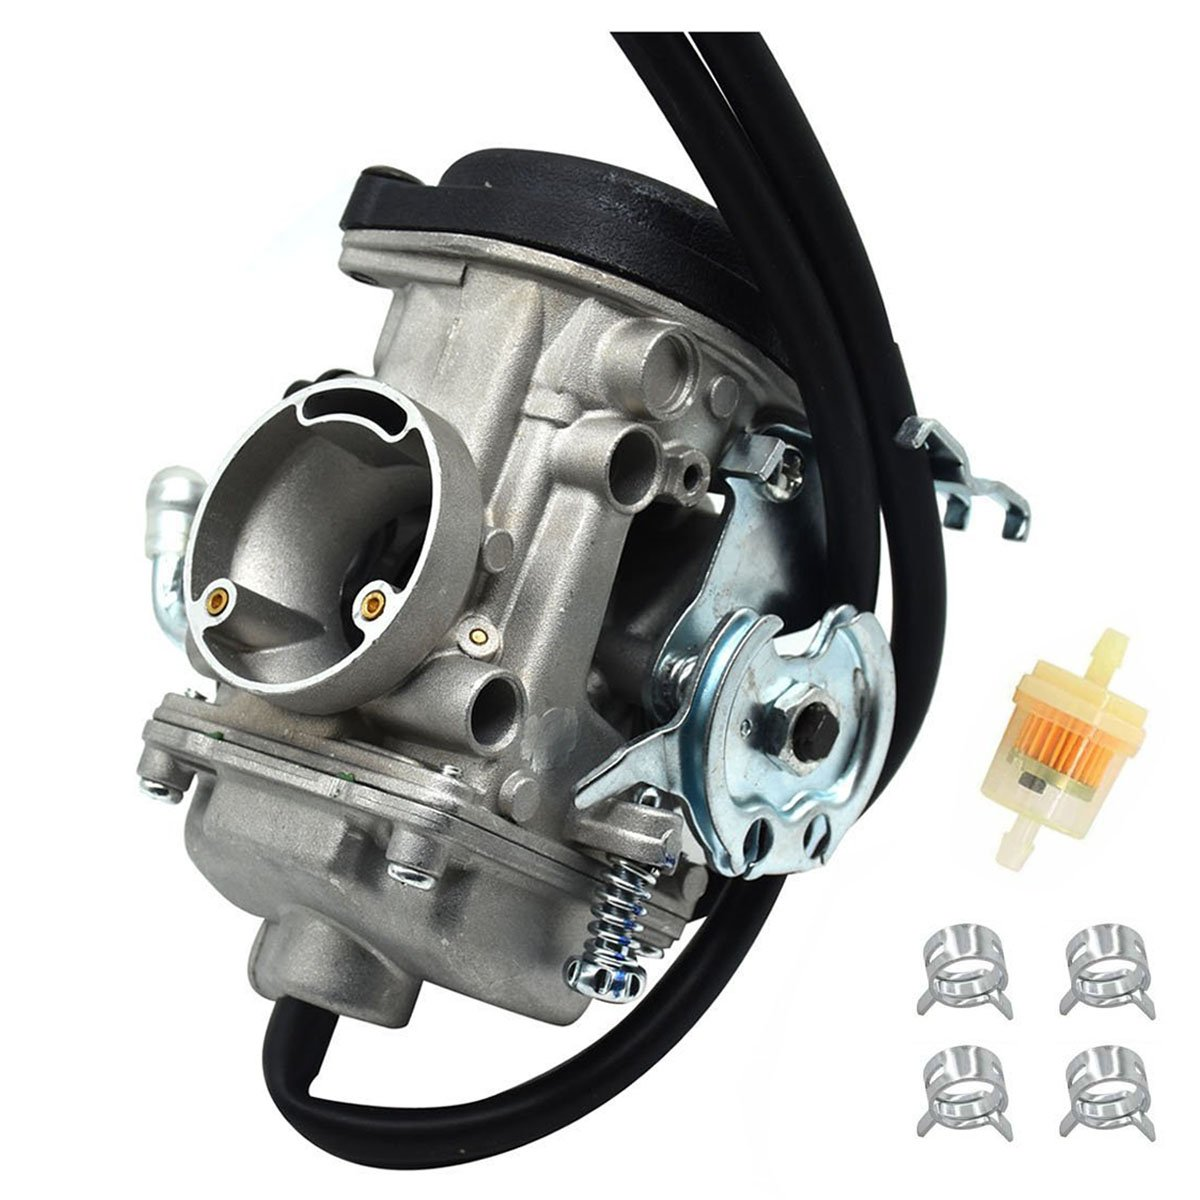 5FY-14301-00-00 Karbay Carburetor For 2001-2017 Trailway Replace TW200 TK250 TW 200 Carb